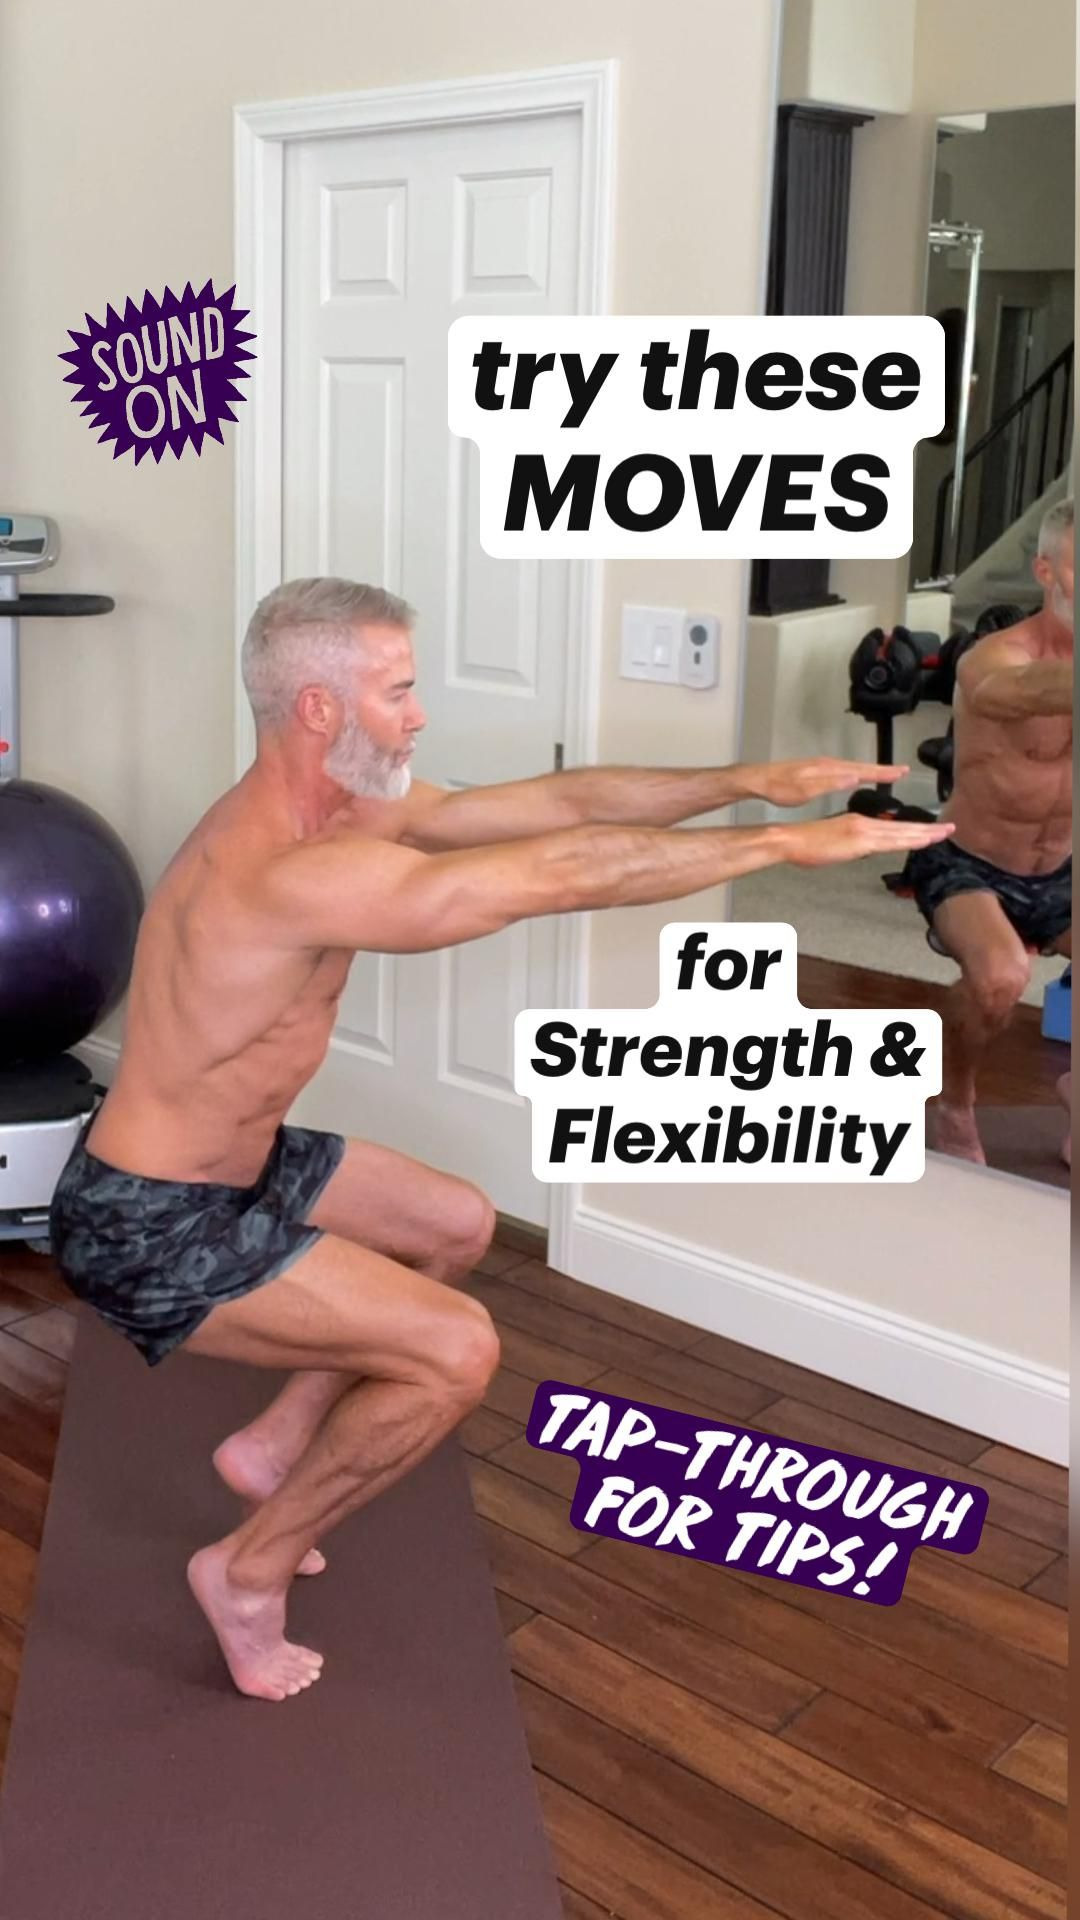 Try These Moves for Strength & Flexibility